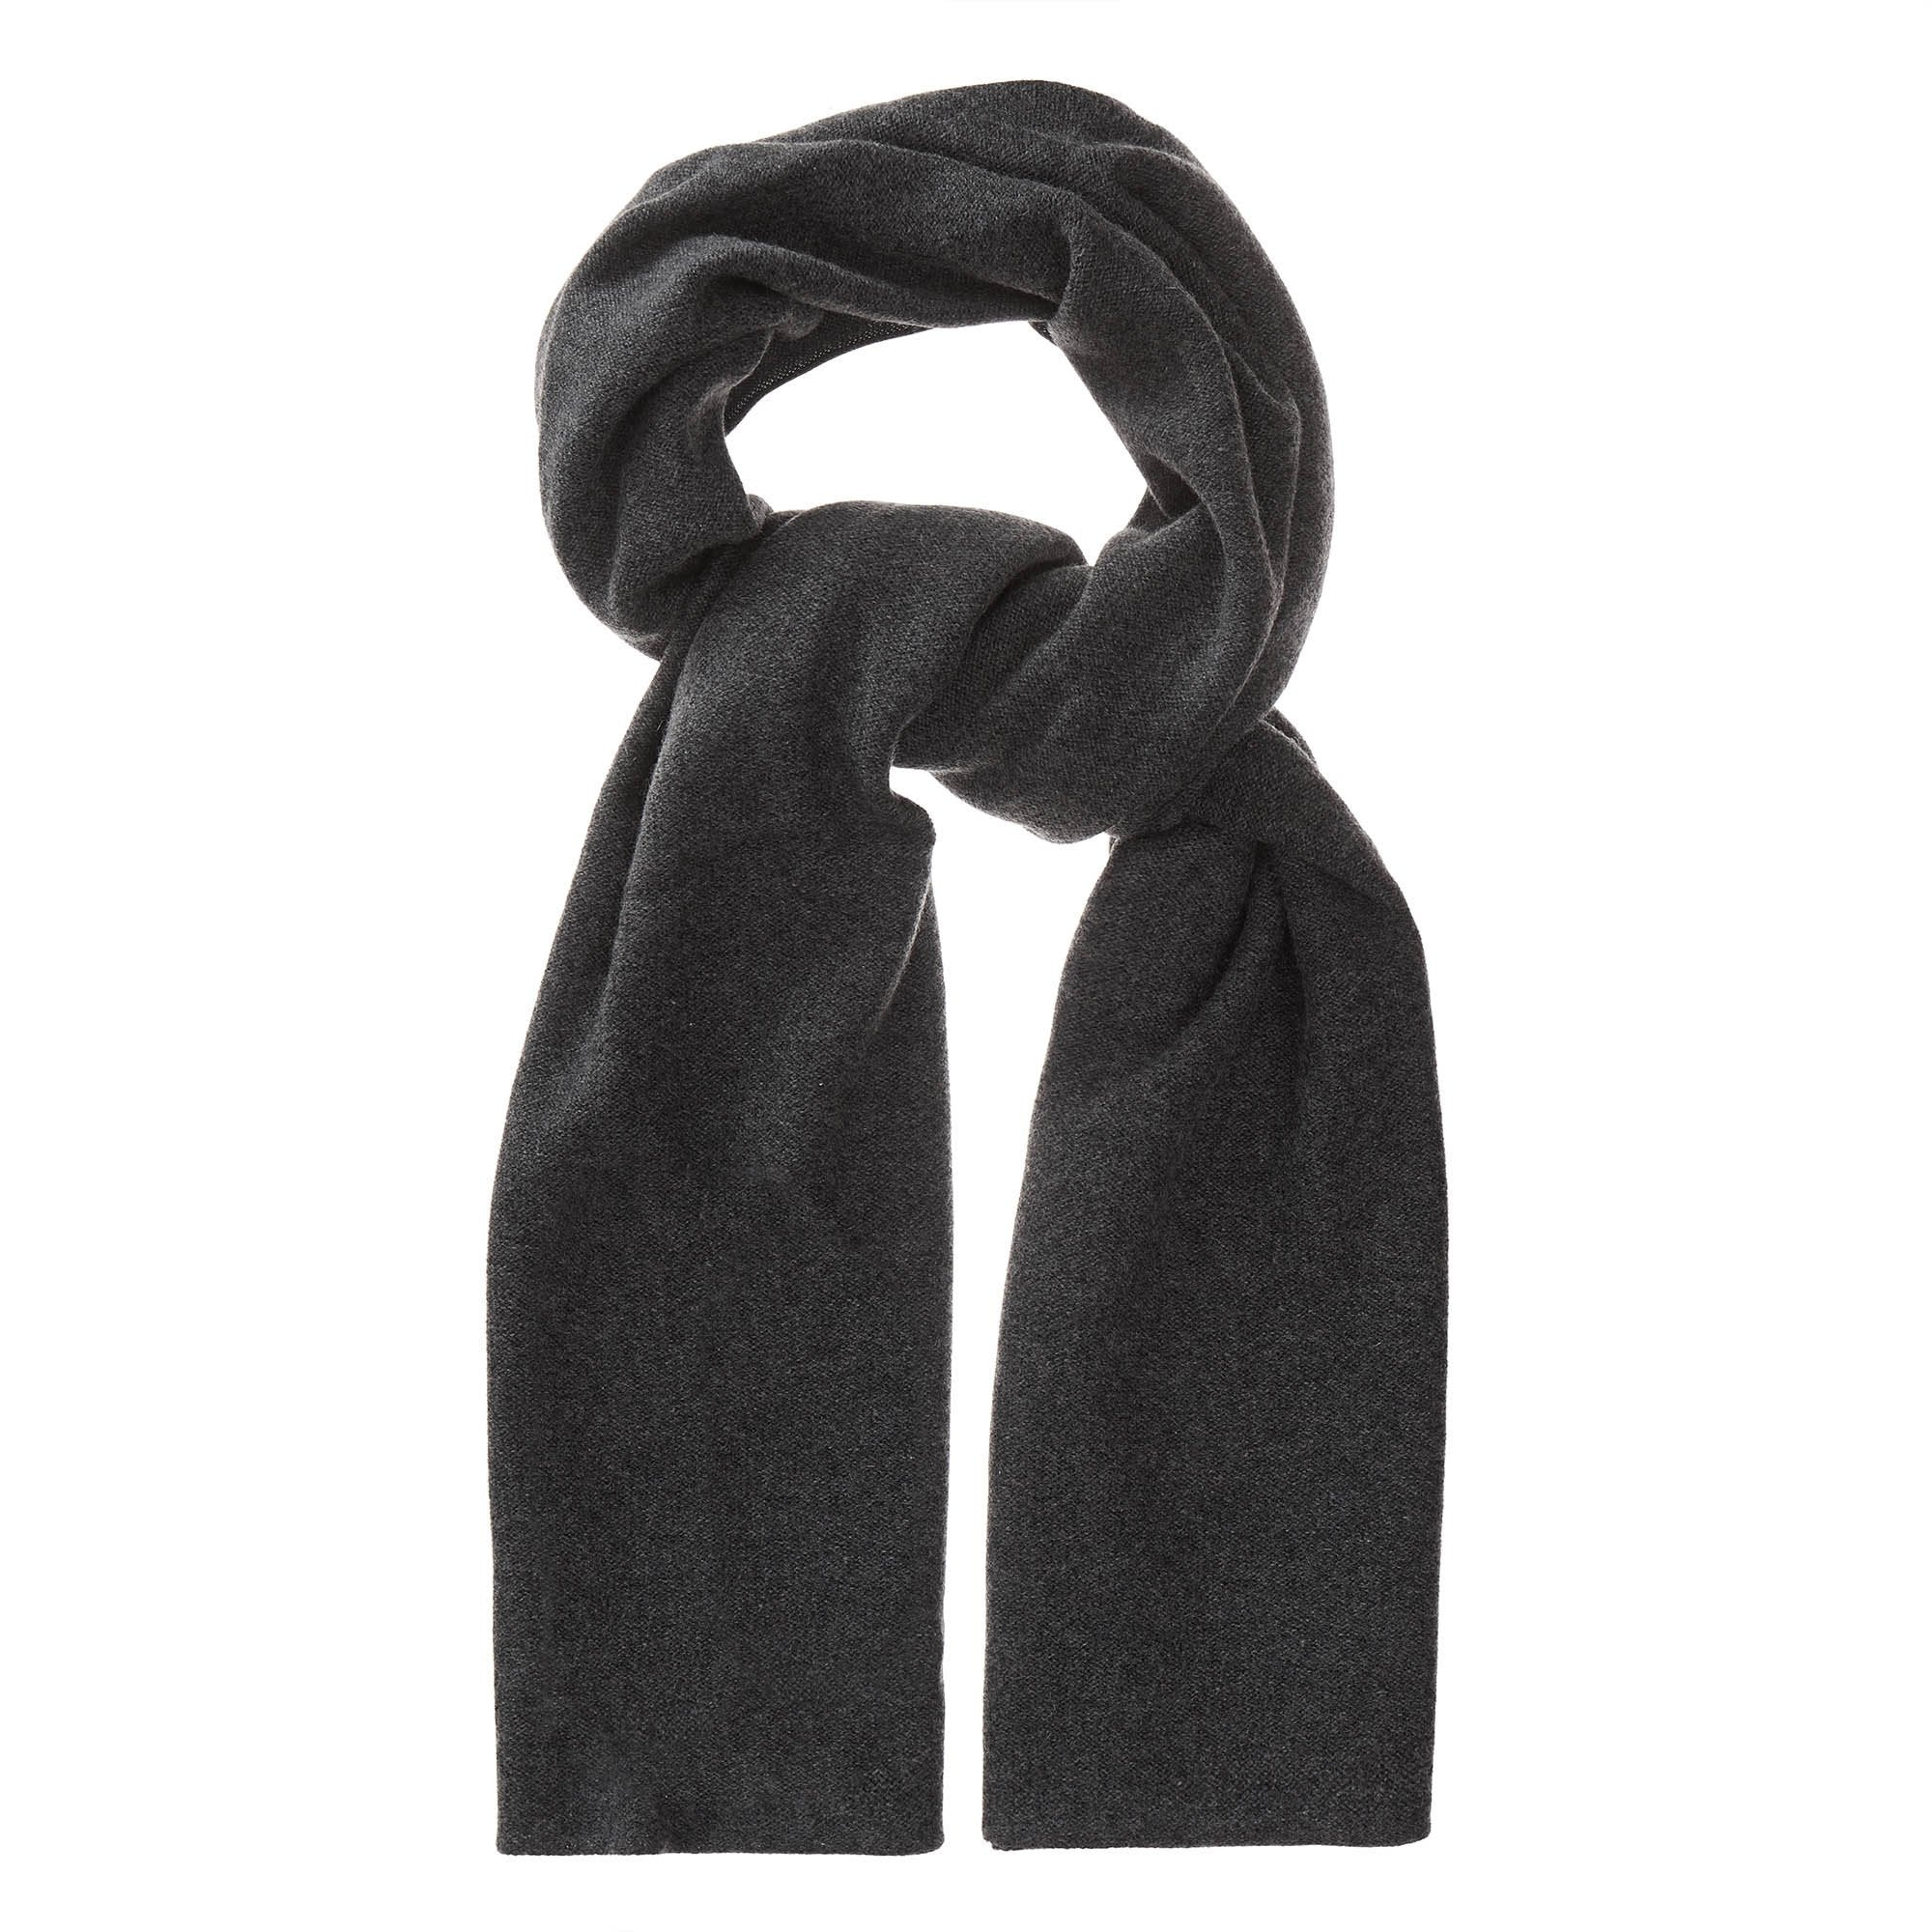 Nora scarf, charcoal, 50% cashmere wool & 50% wool